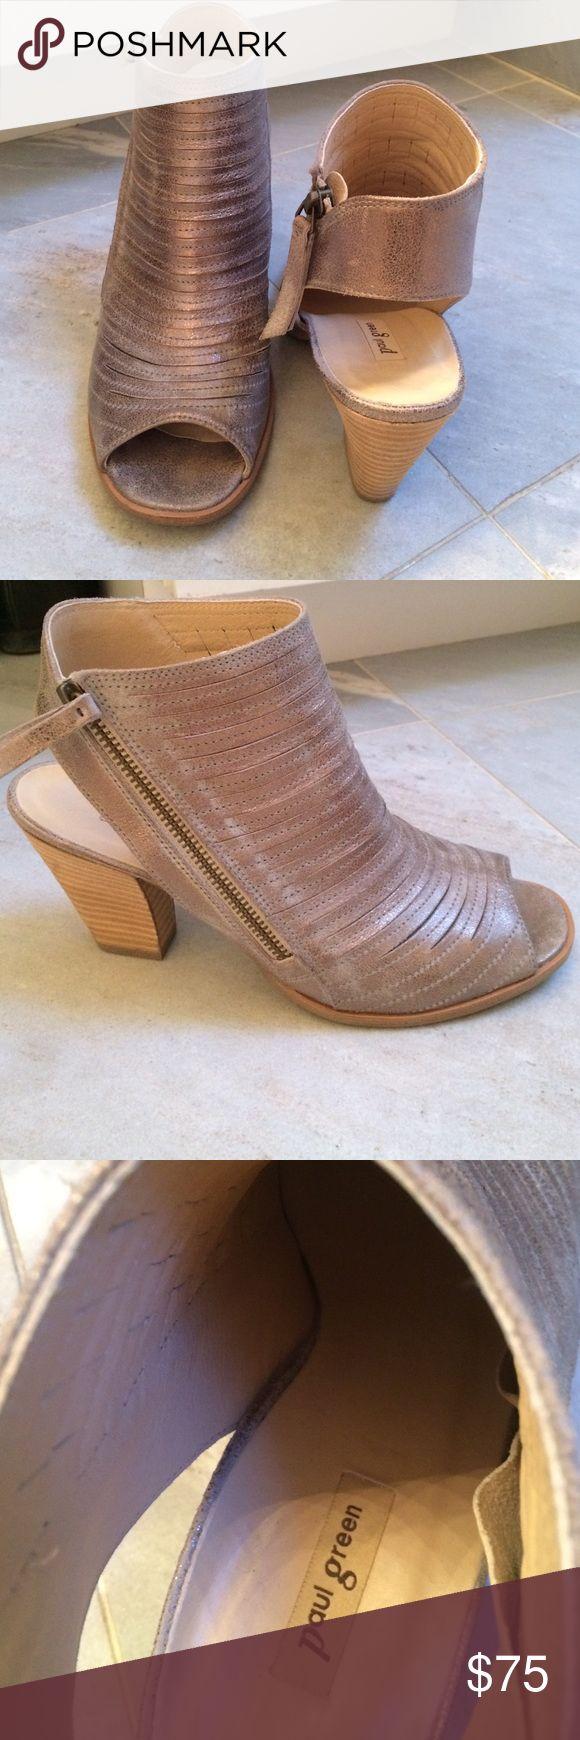 Paul Green shoes Bronze color sandals. Side zip. Worn only a few times. Perfect!! Paul Green Shoes Sandals